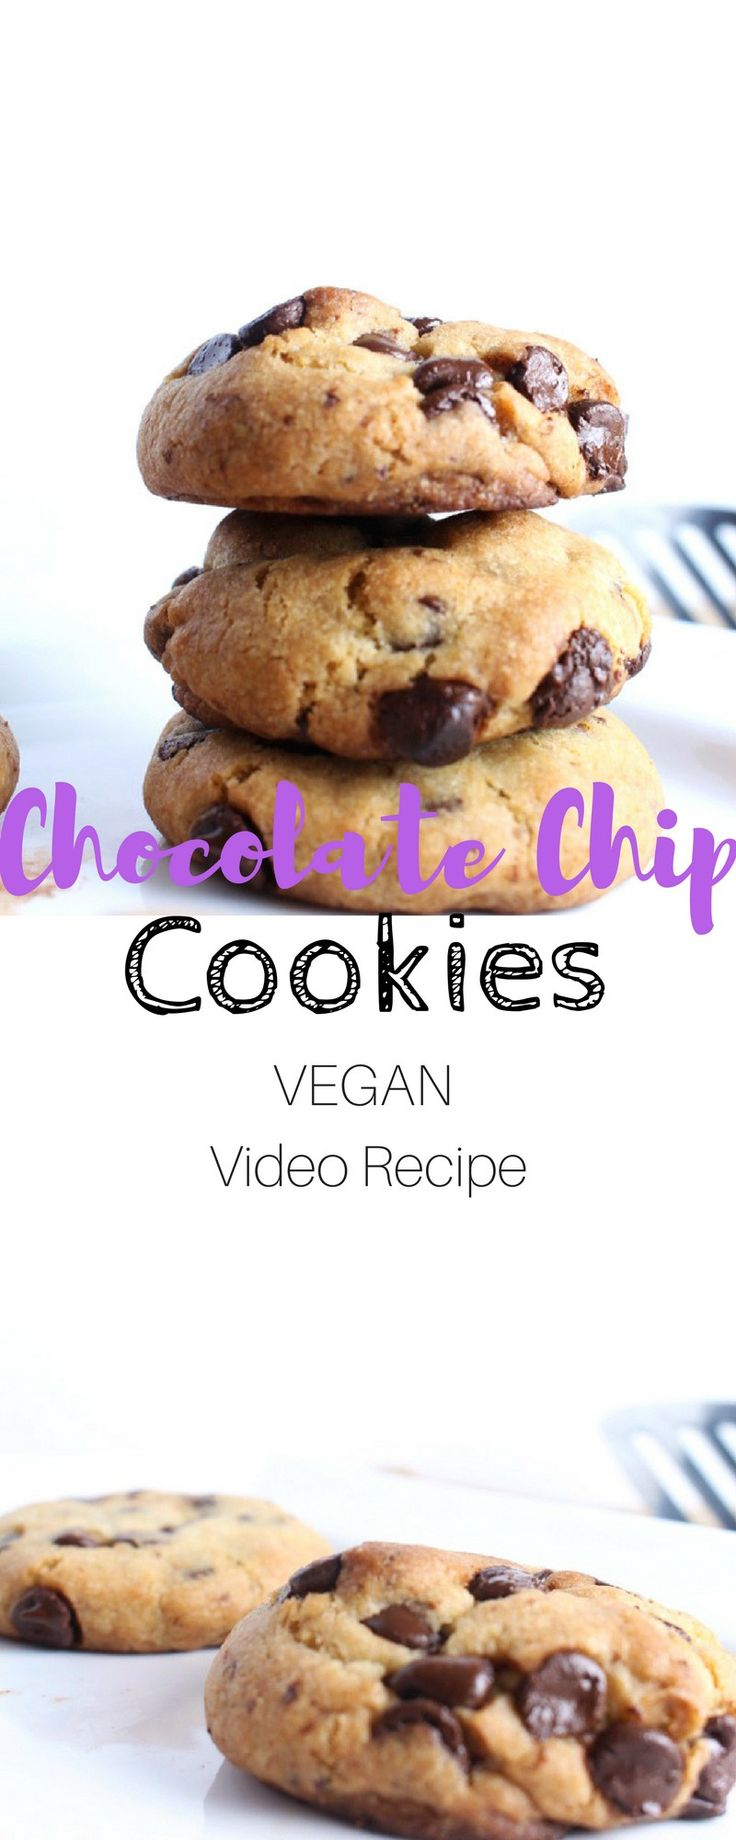 Soft and Chewy Vegan Chocolate Chip Cookie Recipe - This my favourite vegan recipe for chocolate chip cookies. It does not require any crazy ingredients and will be ready in under 30 minutes.